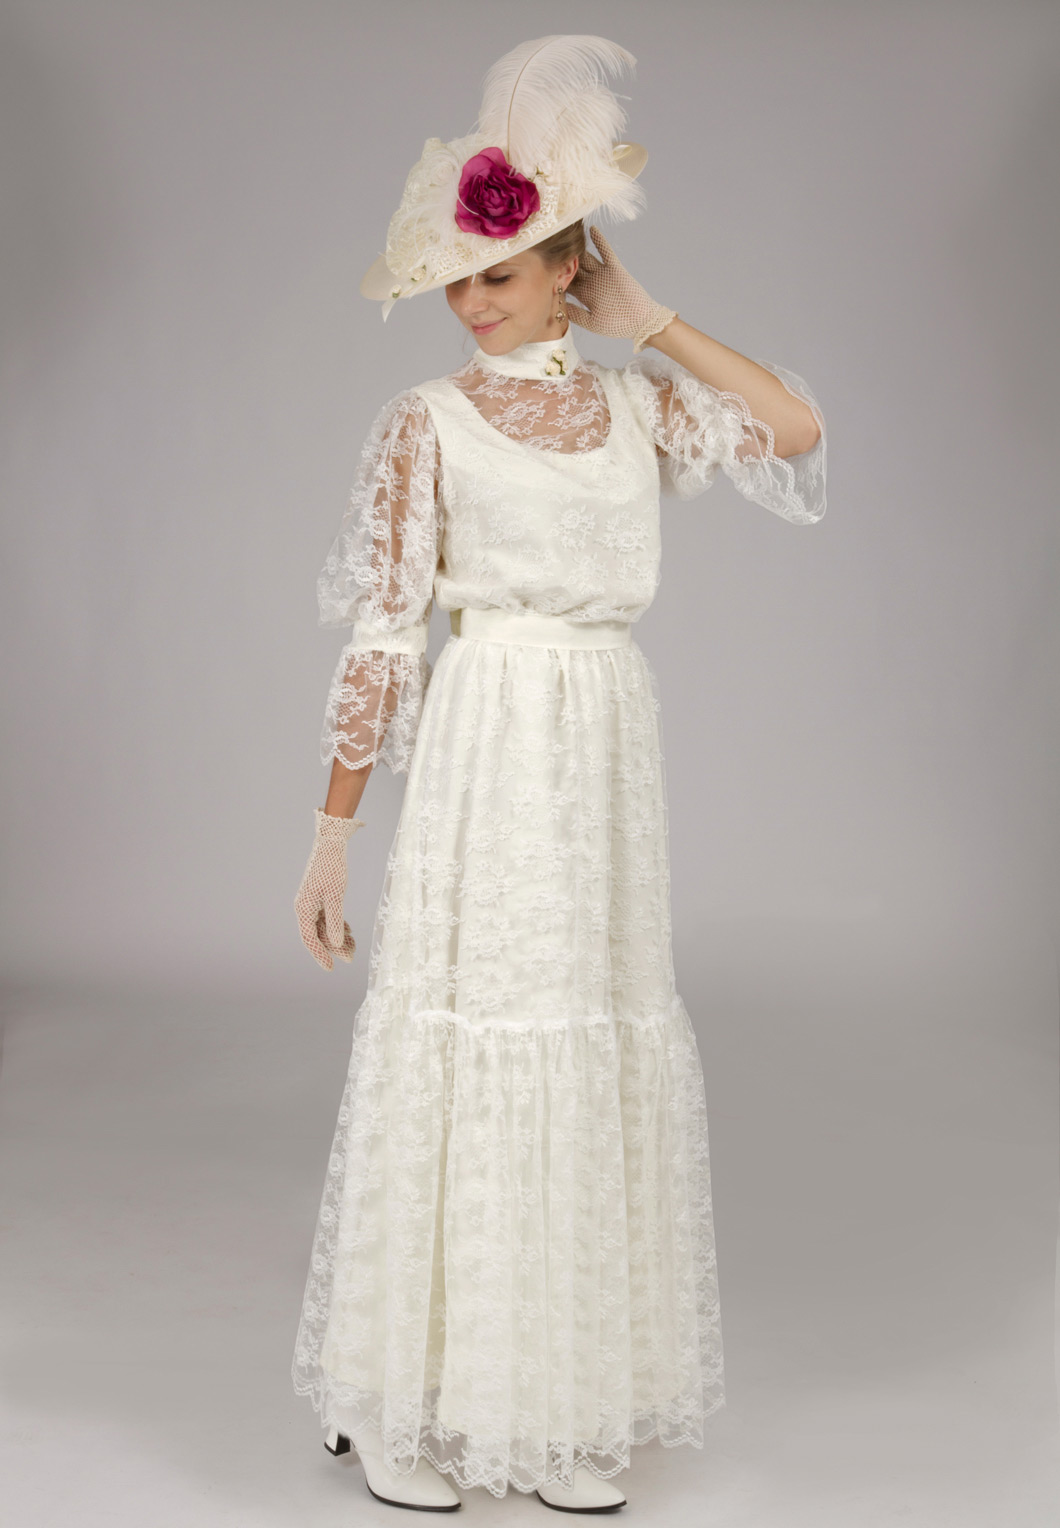 Chantilly lace edwardian dress recollections for Old west wedding dresses